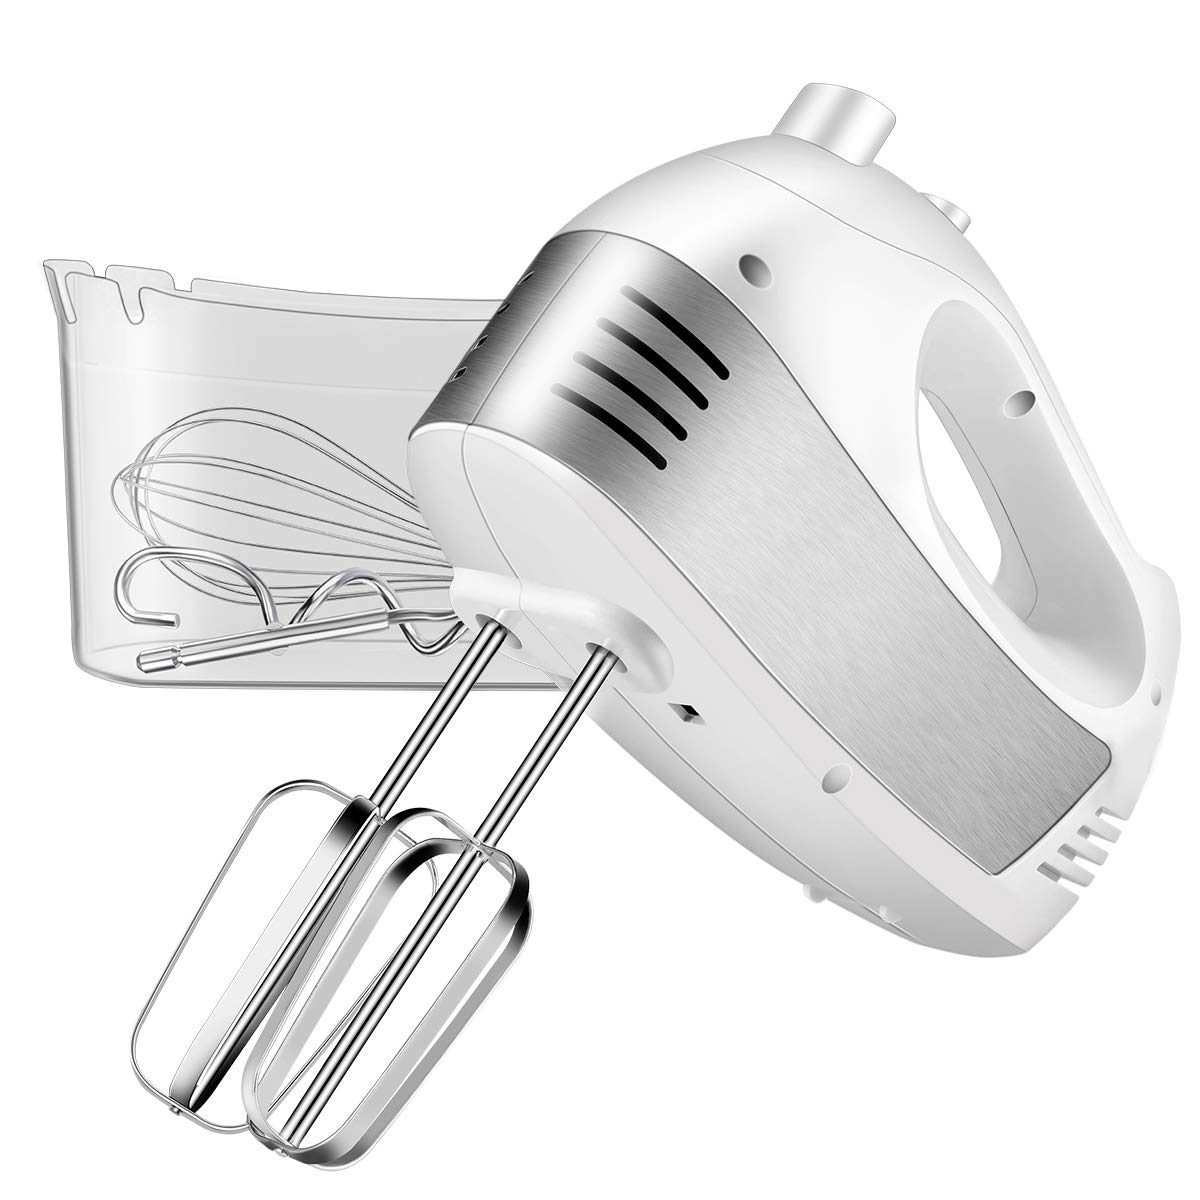 Hand Mixer Electric, Cusinaid 5-Speed Hand Mixer with Turbo Handheld Kitchen Mixer Includes Beaters, Dough Hooks and Storage Case, White by CUSINAID